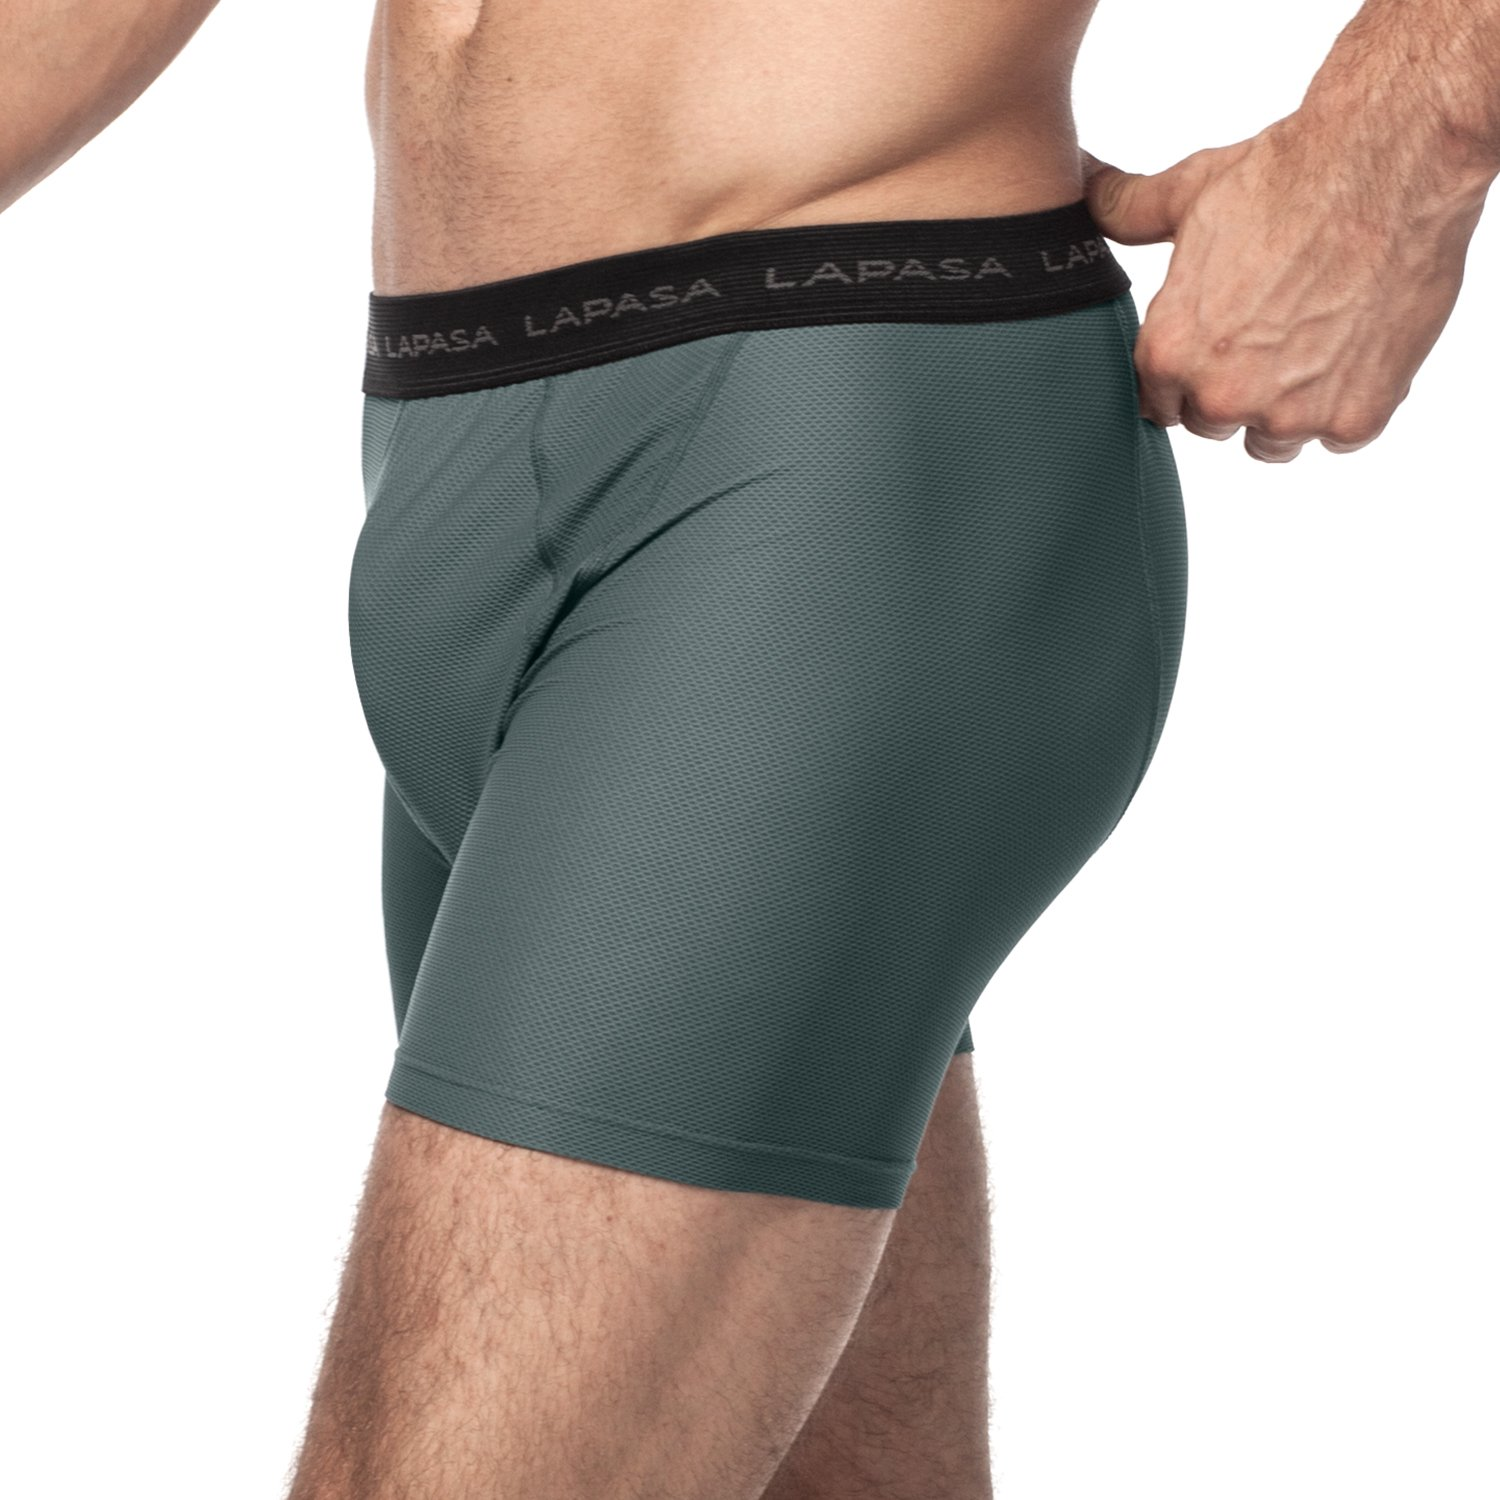 LAPASA 2 Pack Men's Sport Boxer Briefs Mesh Travel Underwear Ultra Quick Dry Breathable Odor Resistant M16 (Small, Gray) by LAPASA (Image #3)